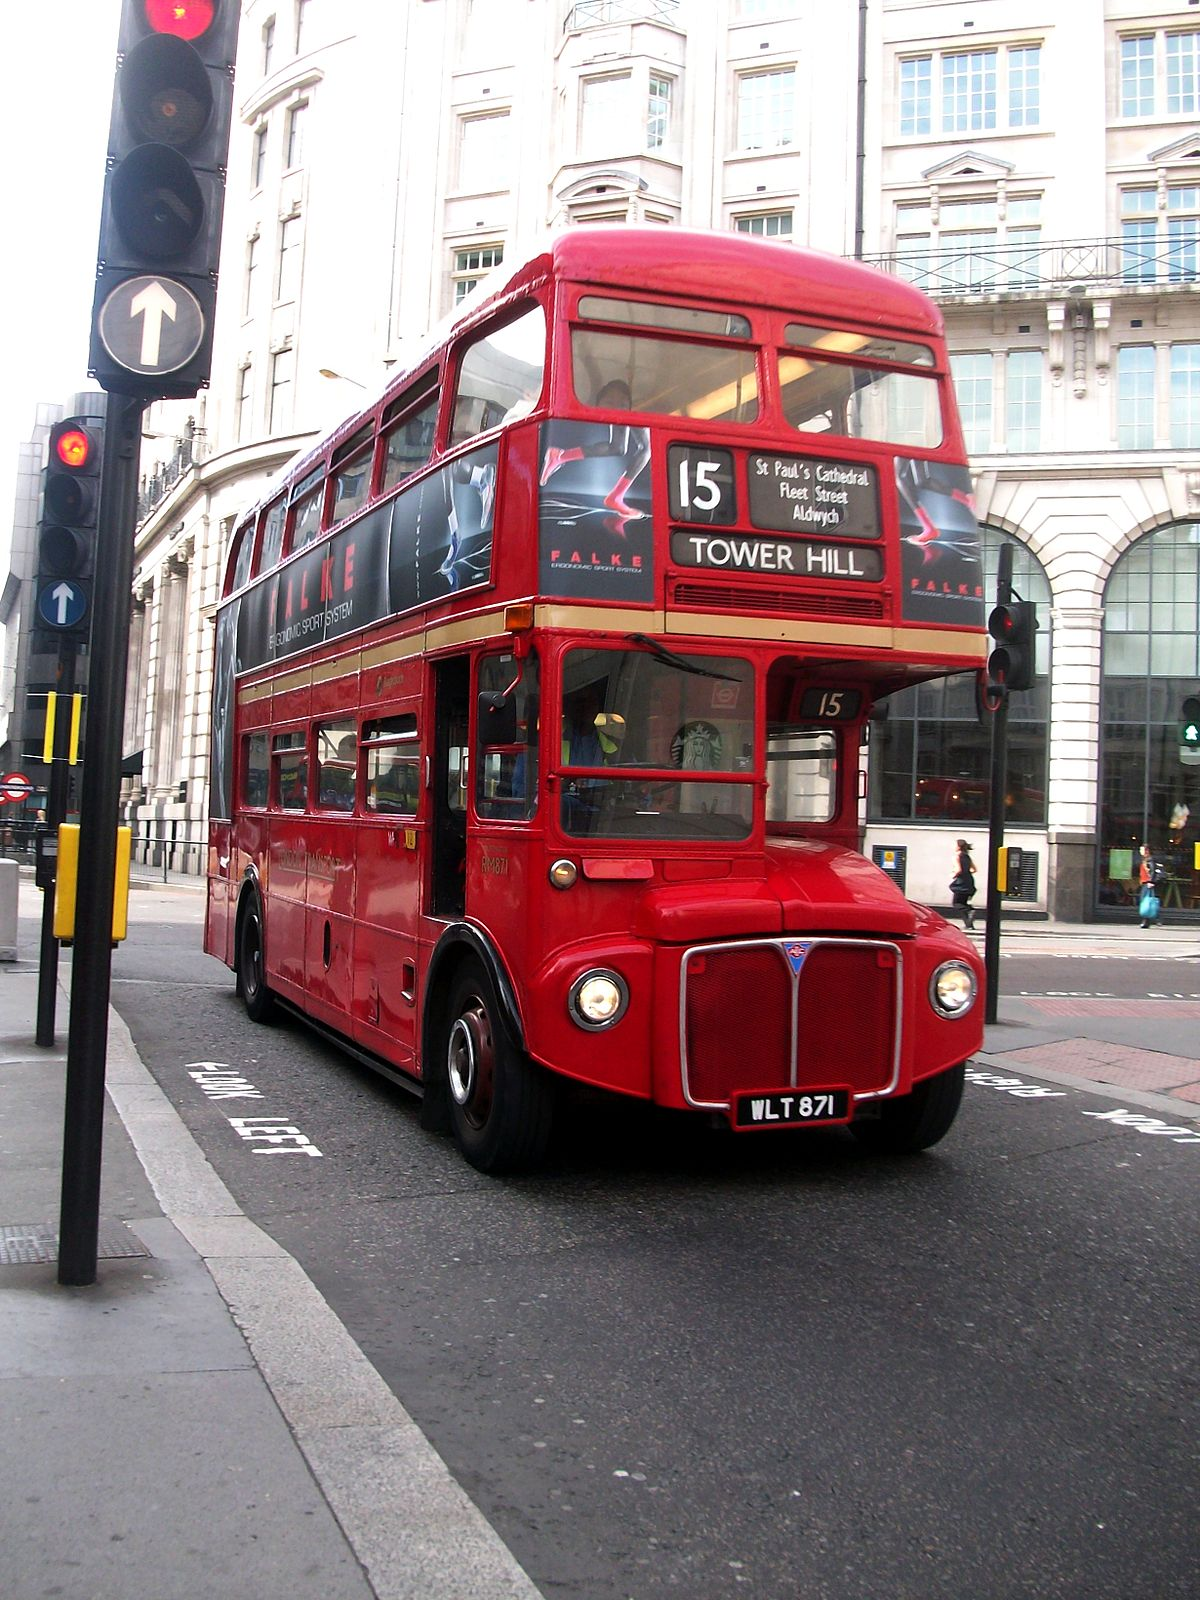 autobus de londres wikip dia. Black Bedroom Furniture Sets. Home Design Ideas